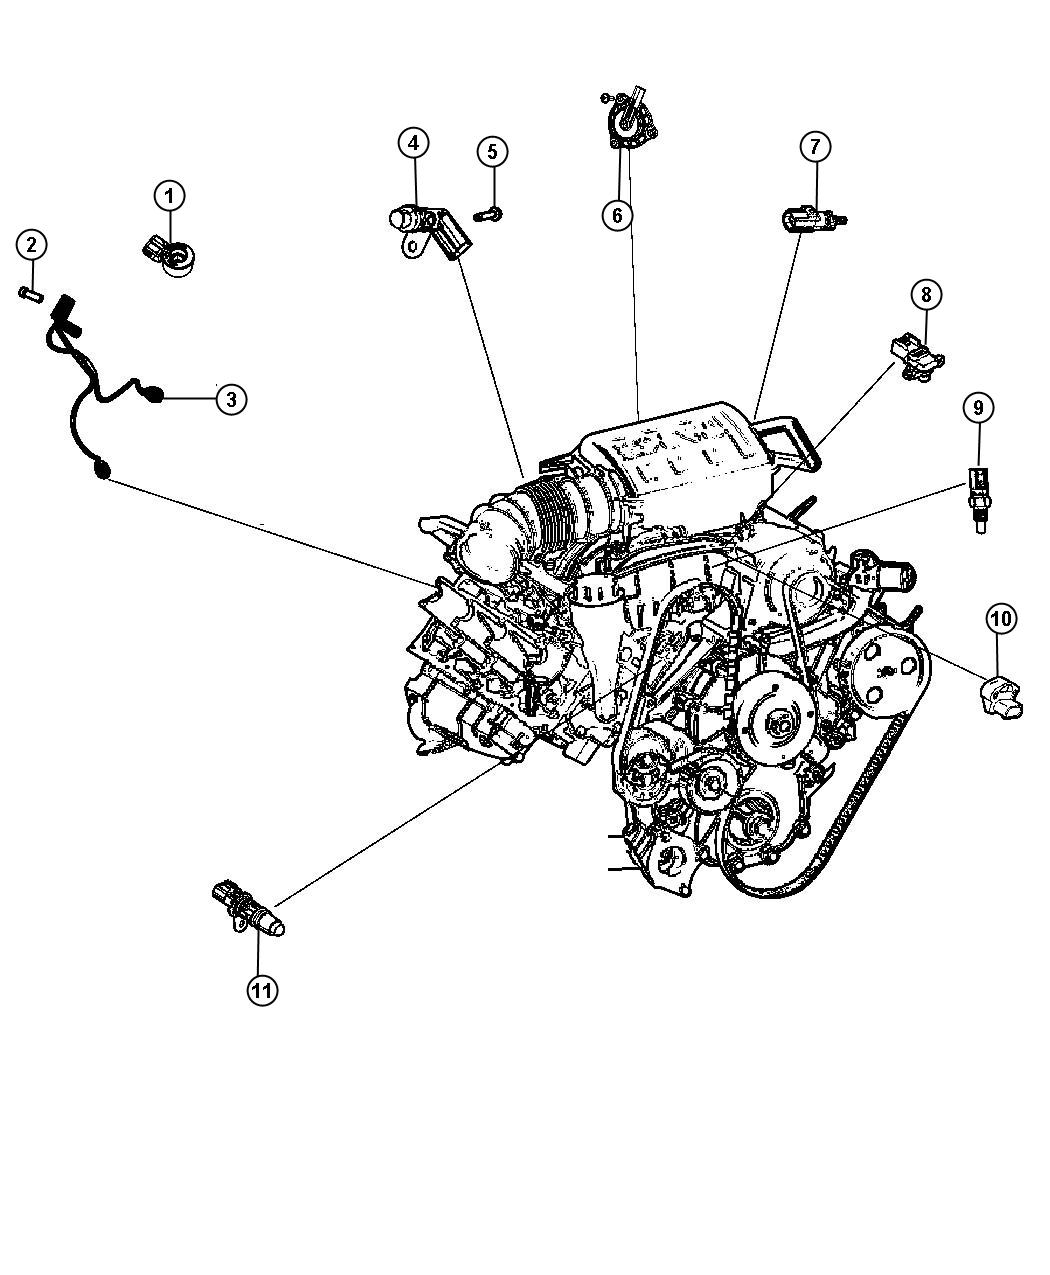 audi a4 wiring diagram with Dodge 3 8 Oil Pressure Sensor Location on 3800 Oil Pressure Sensor Location additionally 7fvgr Mitsubishi Working Friends 02 Mitsubishi Galant Es Auto as well 018 Volkswagen Passat Official Factory Repair Manual Heating Air Conditioning 1995 1997 Eng likewise Basic Sensors Diagnostics furthermore 8p Audi A3 Fuse Box Diagram.